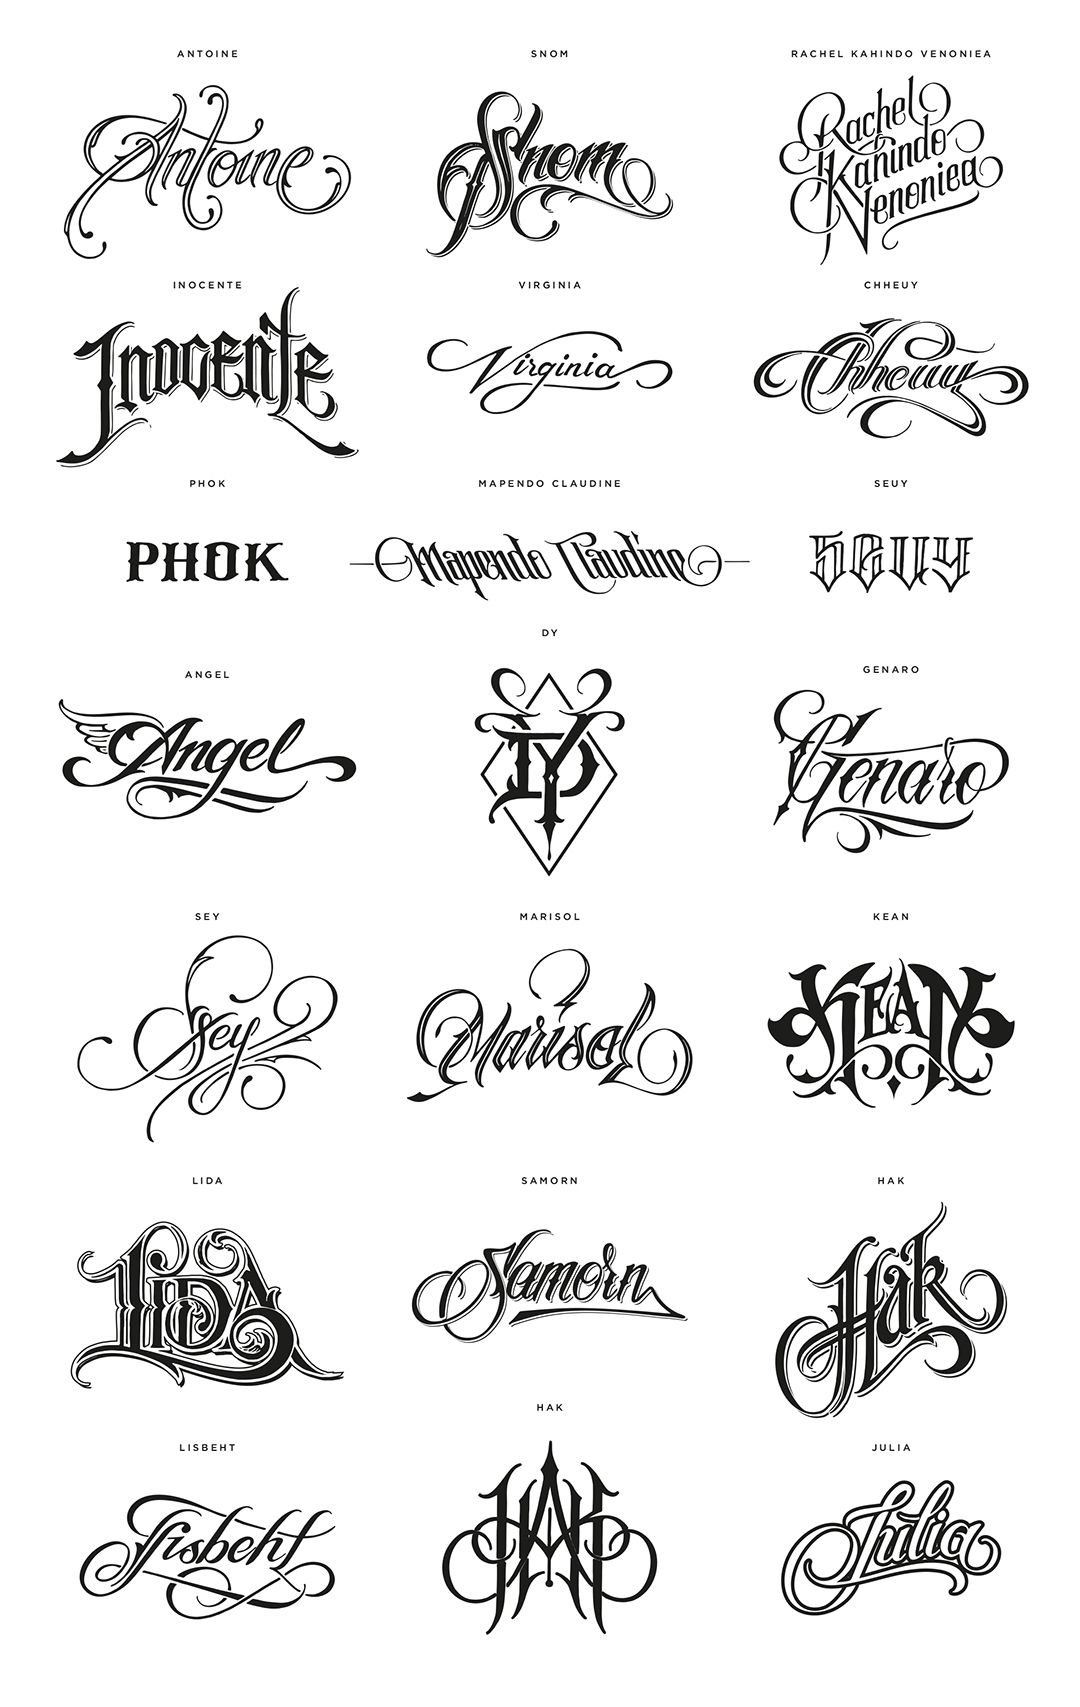 World Food Programme 805 Million Names On Behance Tattoo Name Fonts Name Tattoo Designs Tattoo Lettering